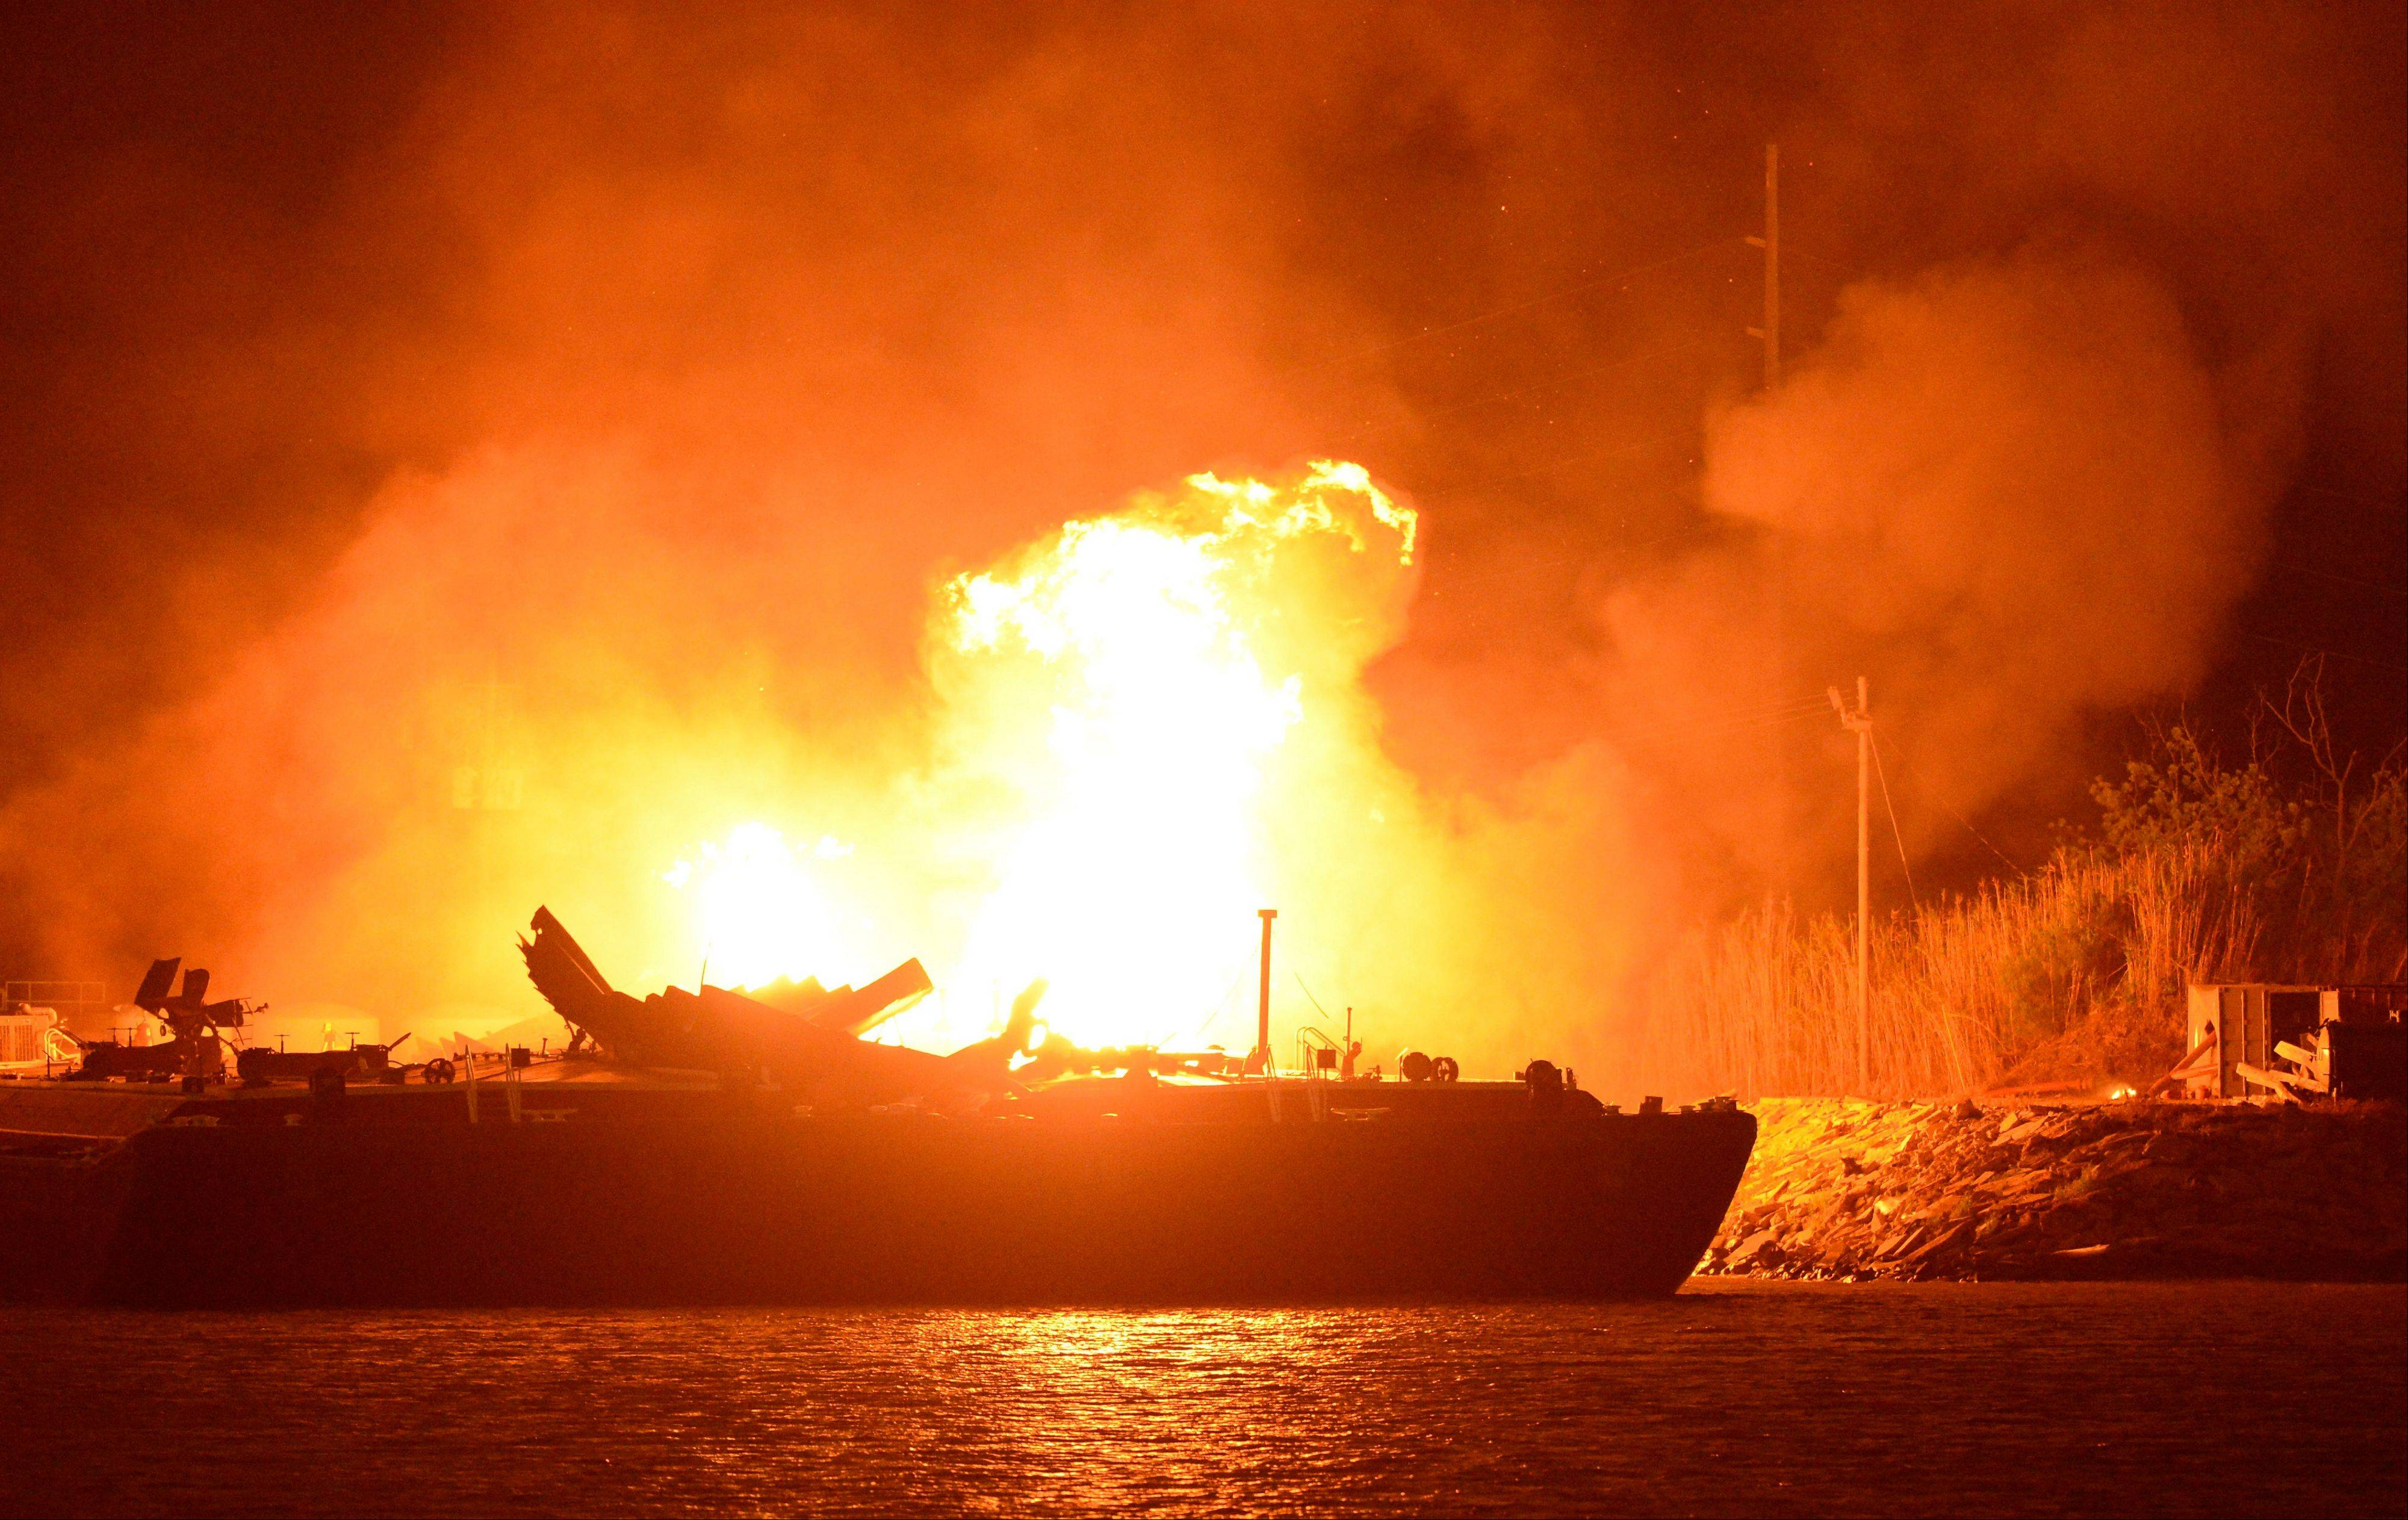 A massive explosion at 3 a.m. EDT on one of the two barges still ablaze in the Mobile River in Mobile, Ala., on Thursday, April 25, 2013. Three people were injured in the blast. Fire officials have pulled units back from fighting the fire due to the explosions and no immediate threat to lives.